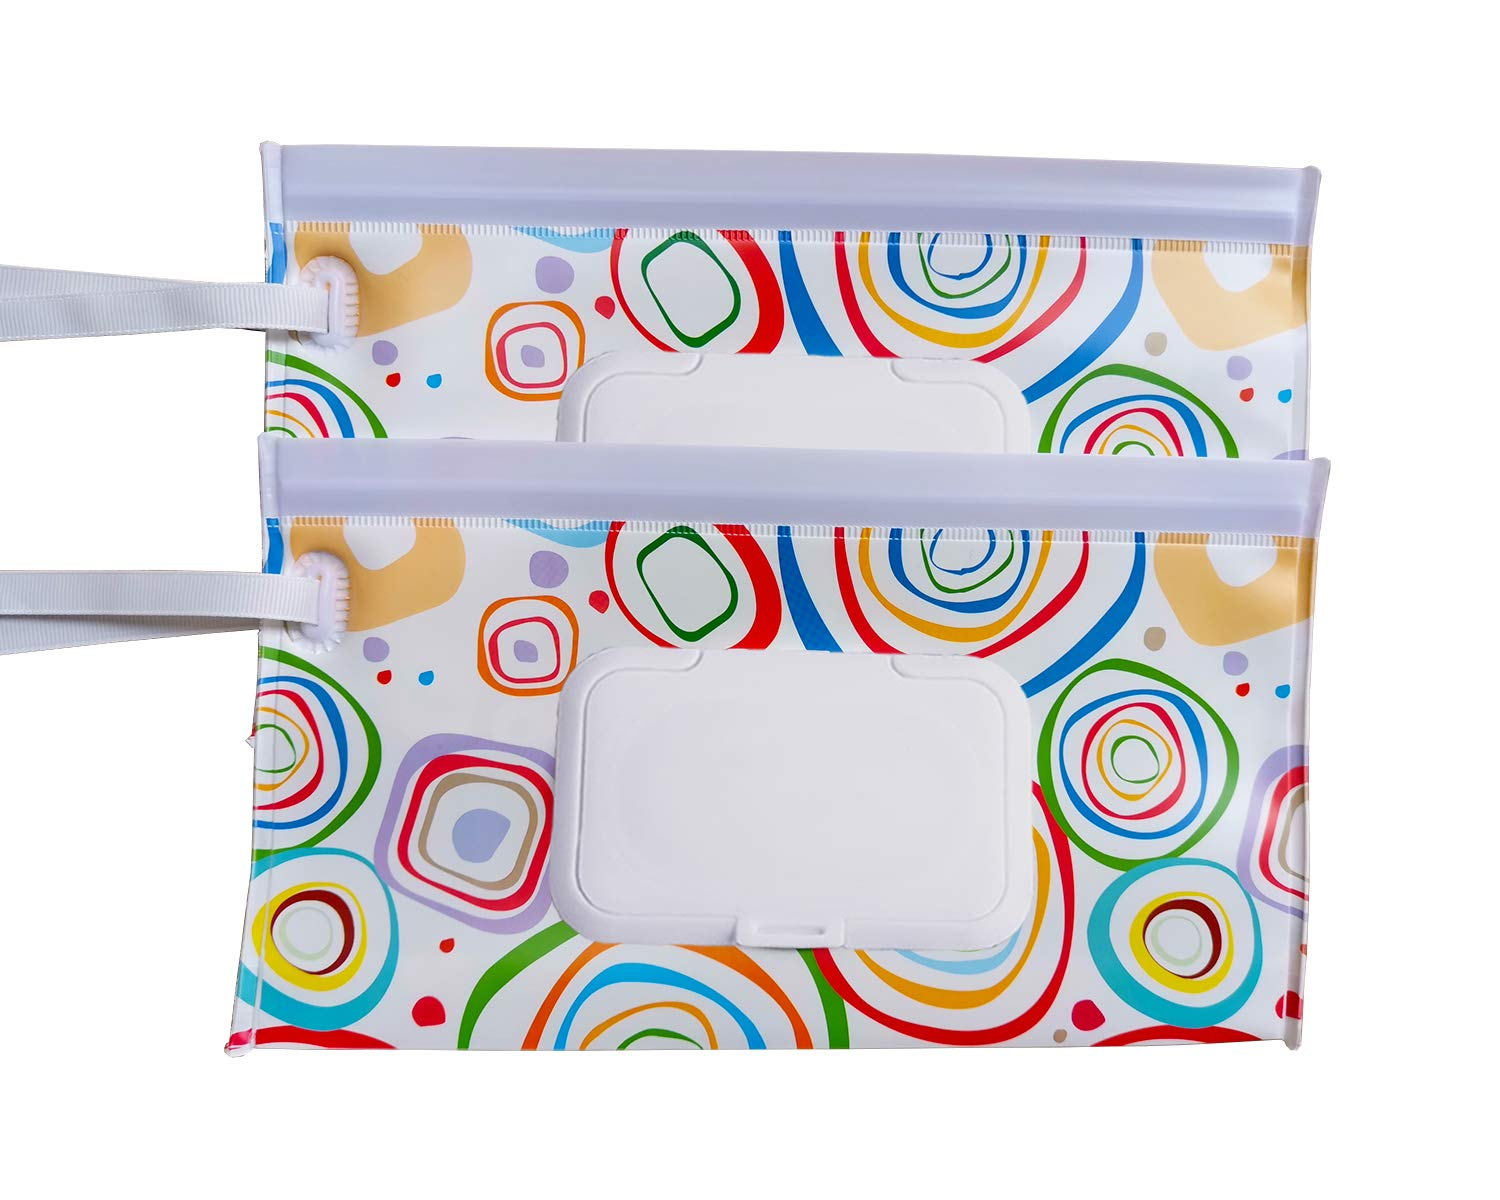 Eco Friendly Wipe Pouches Great for Travel 2 pack B#-03 Reusable Wet Wipe Pouch Dispenser for Baby or Personal Wipes